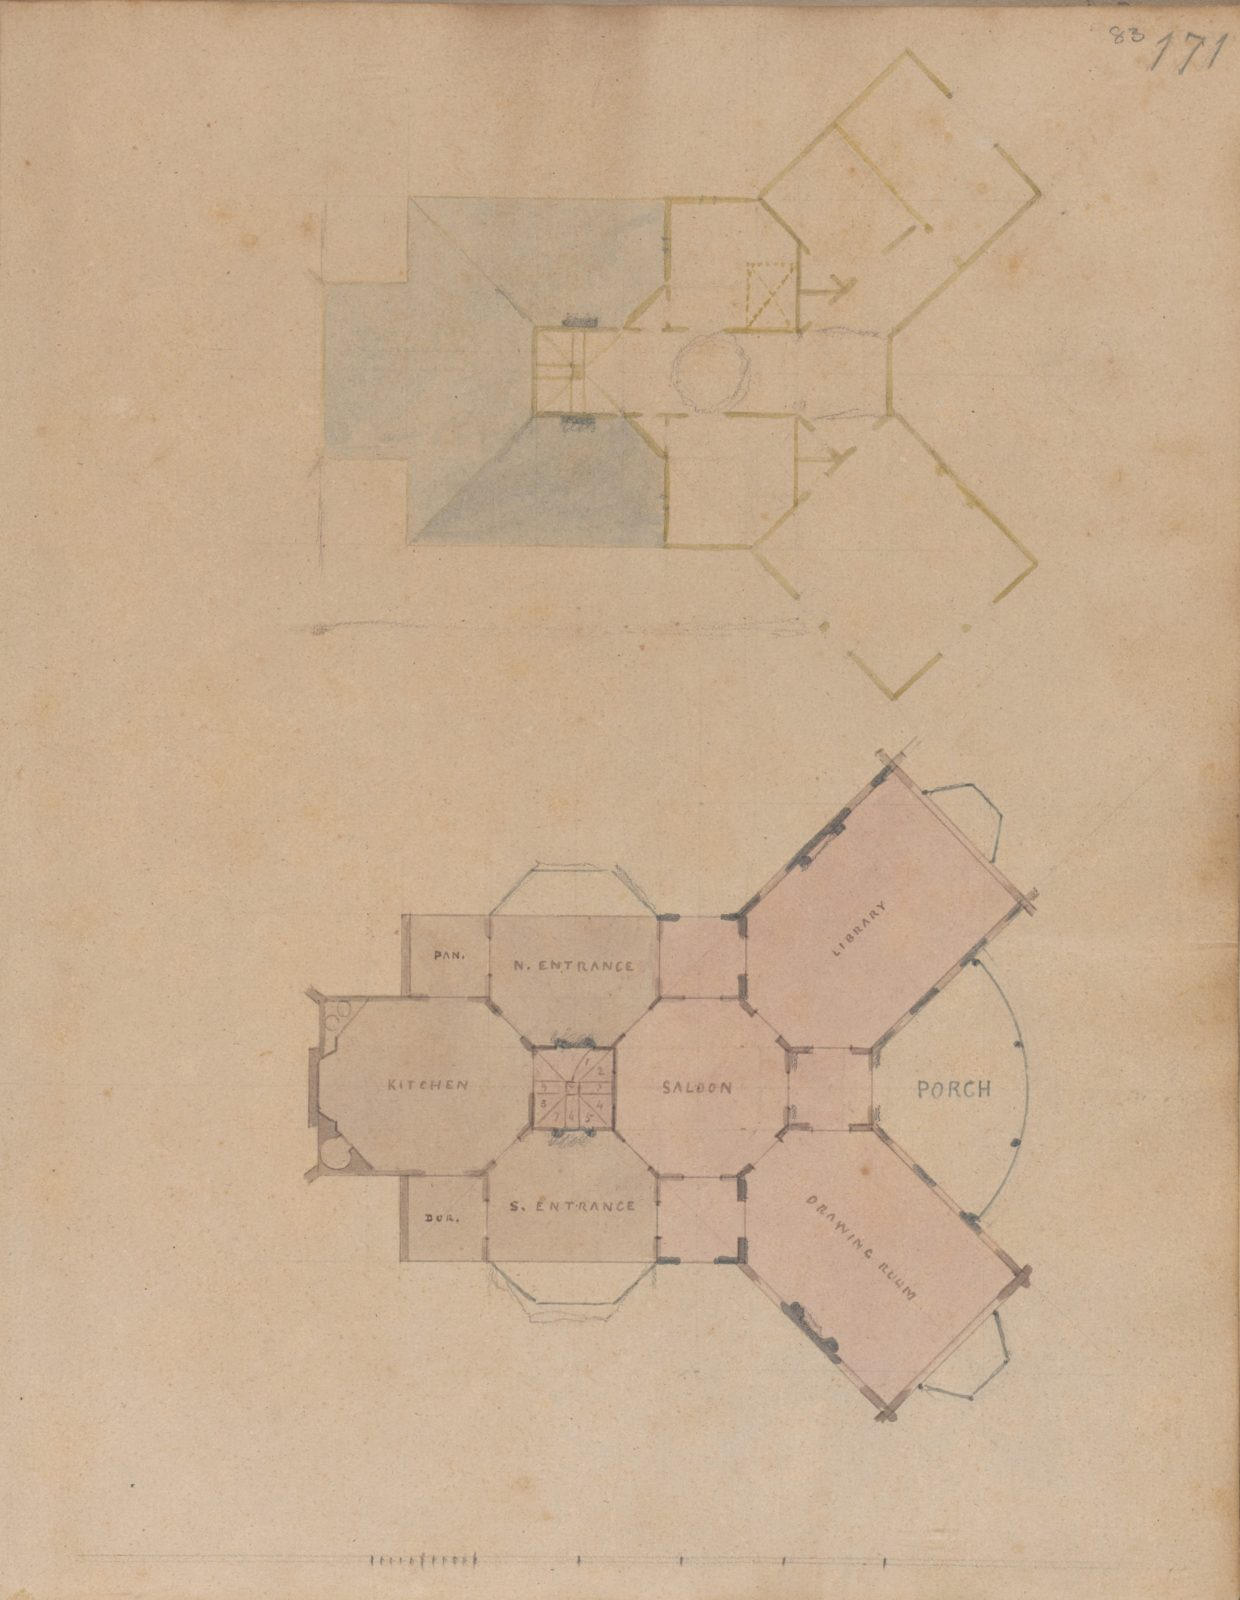 A. J. Davis, Scrapbook III: Hut Cottages, Villas and Dwelling Houses, in Town and Country